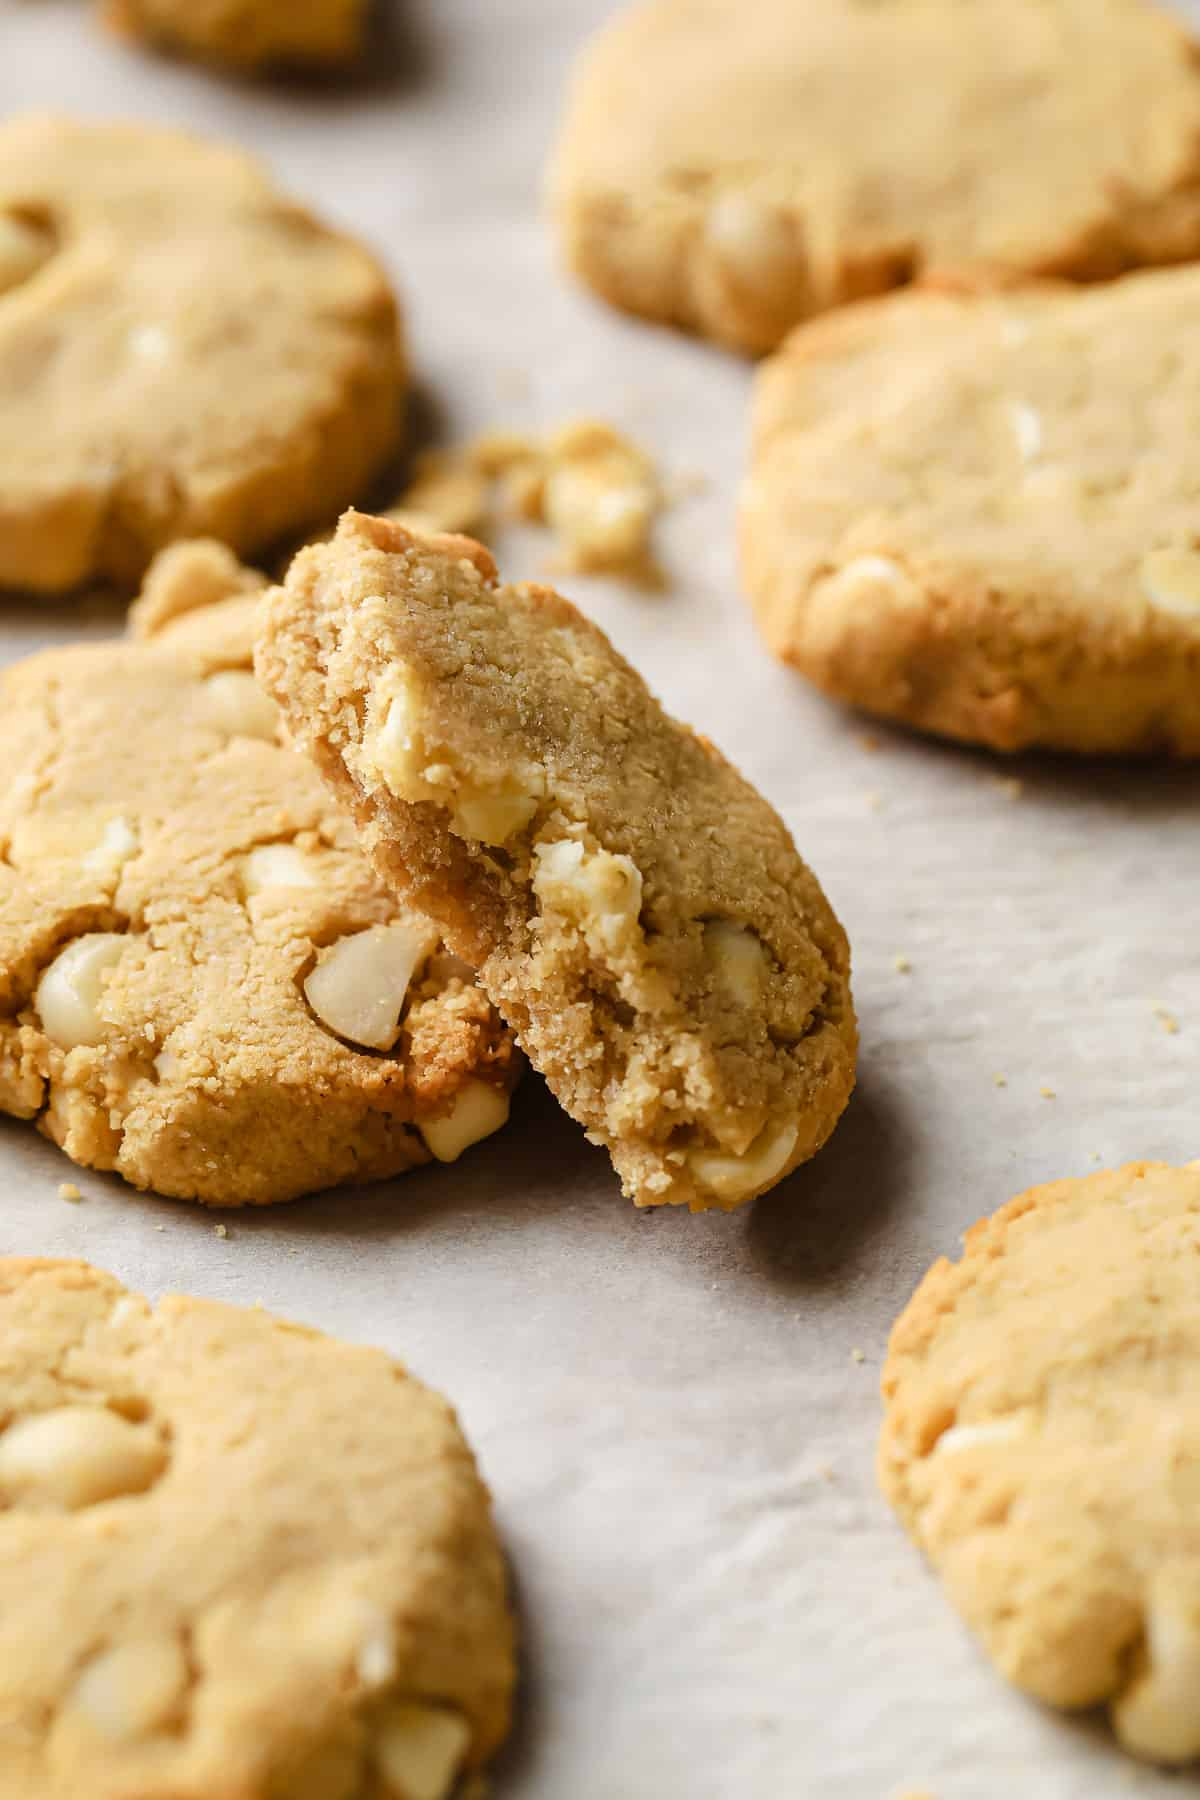 keto white chocolate macadamia nut cookies fresh out of the oven